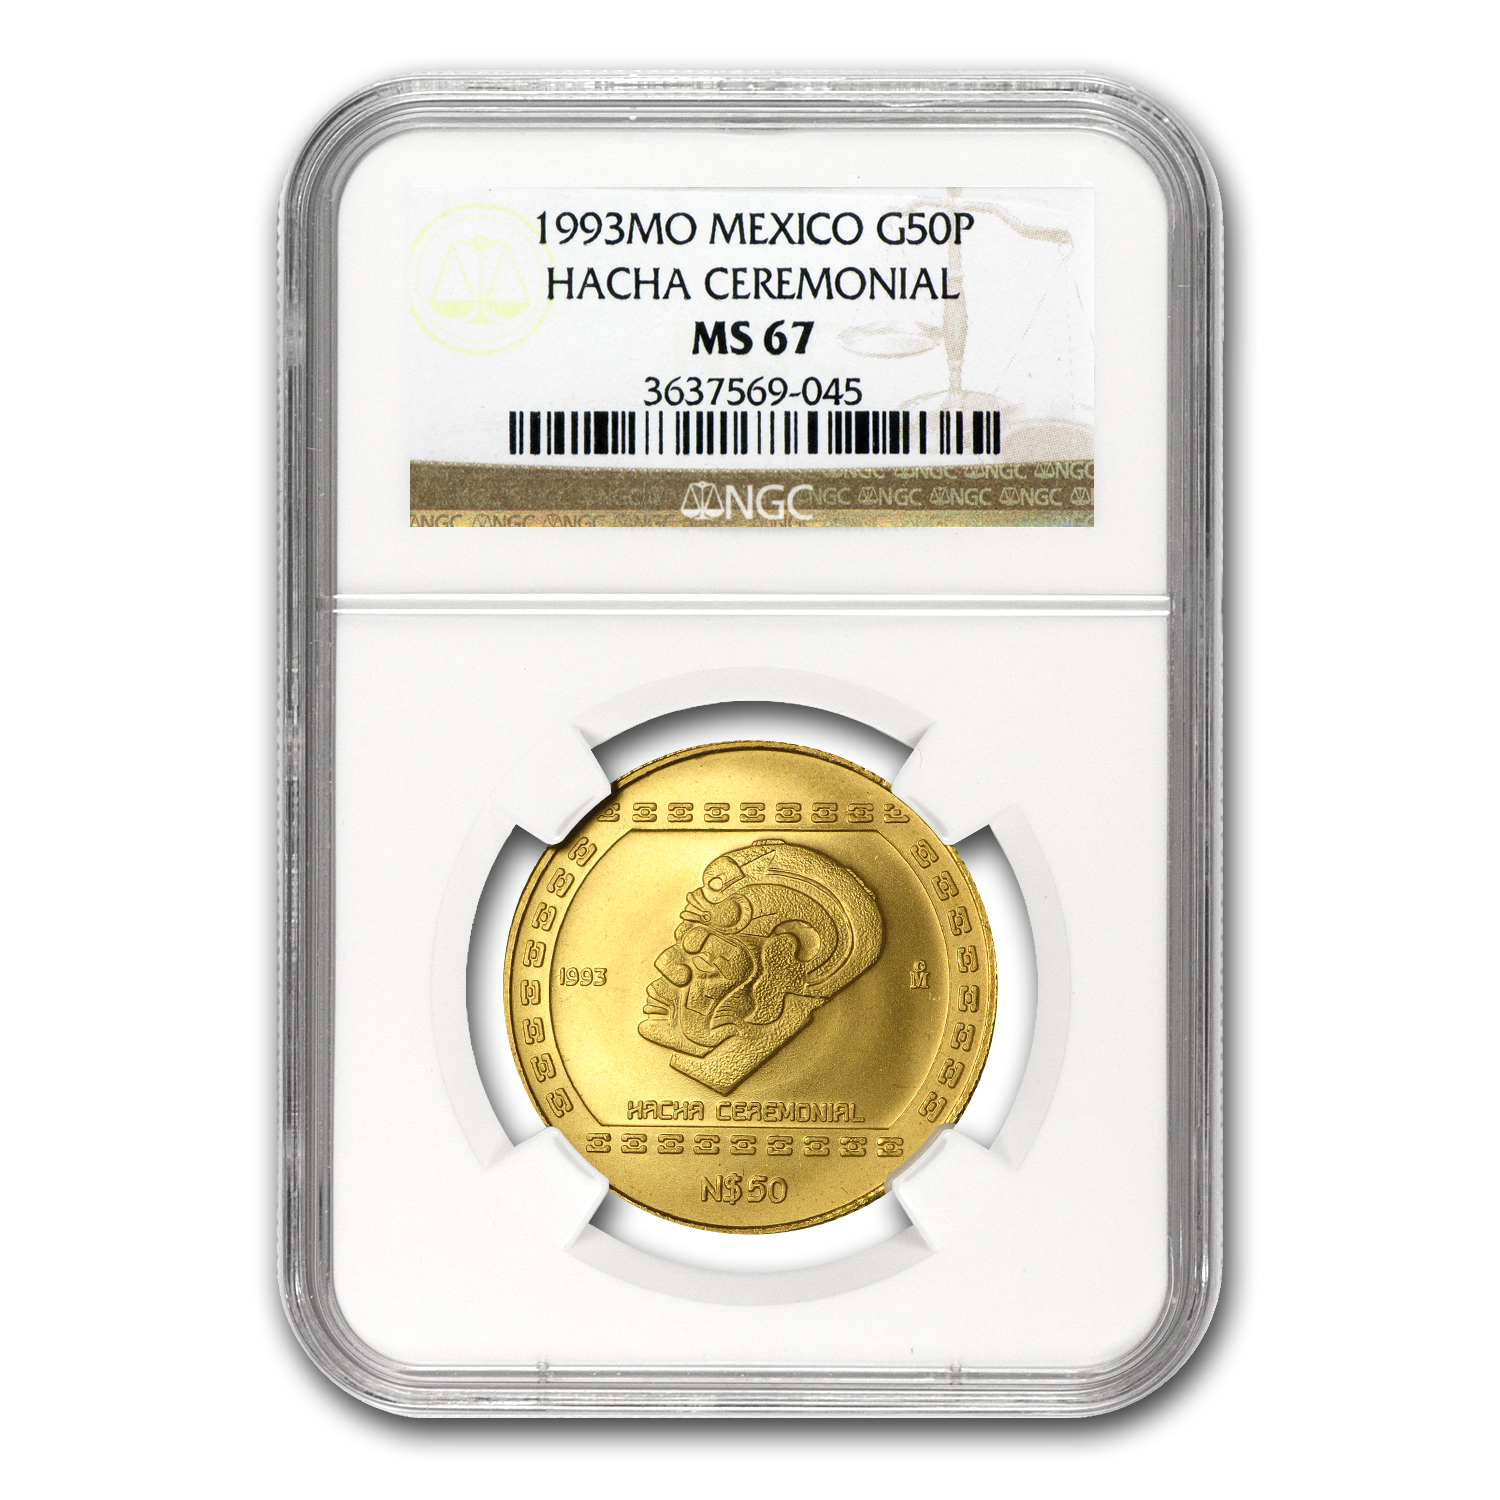 1993 Mexico Gold 50 Pesos Hacha Ceremonial MS-67 NGC